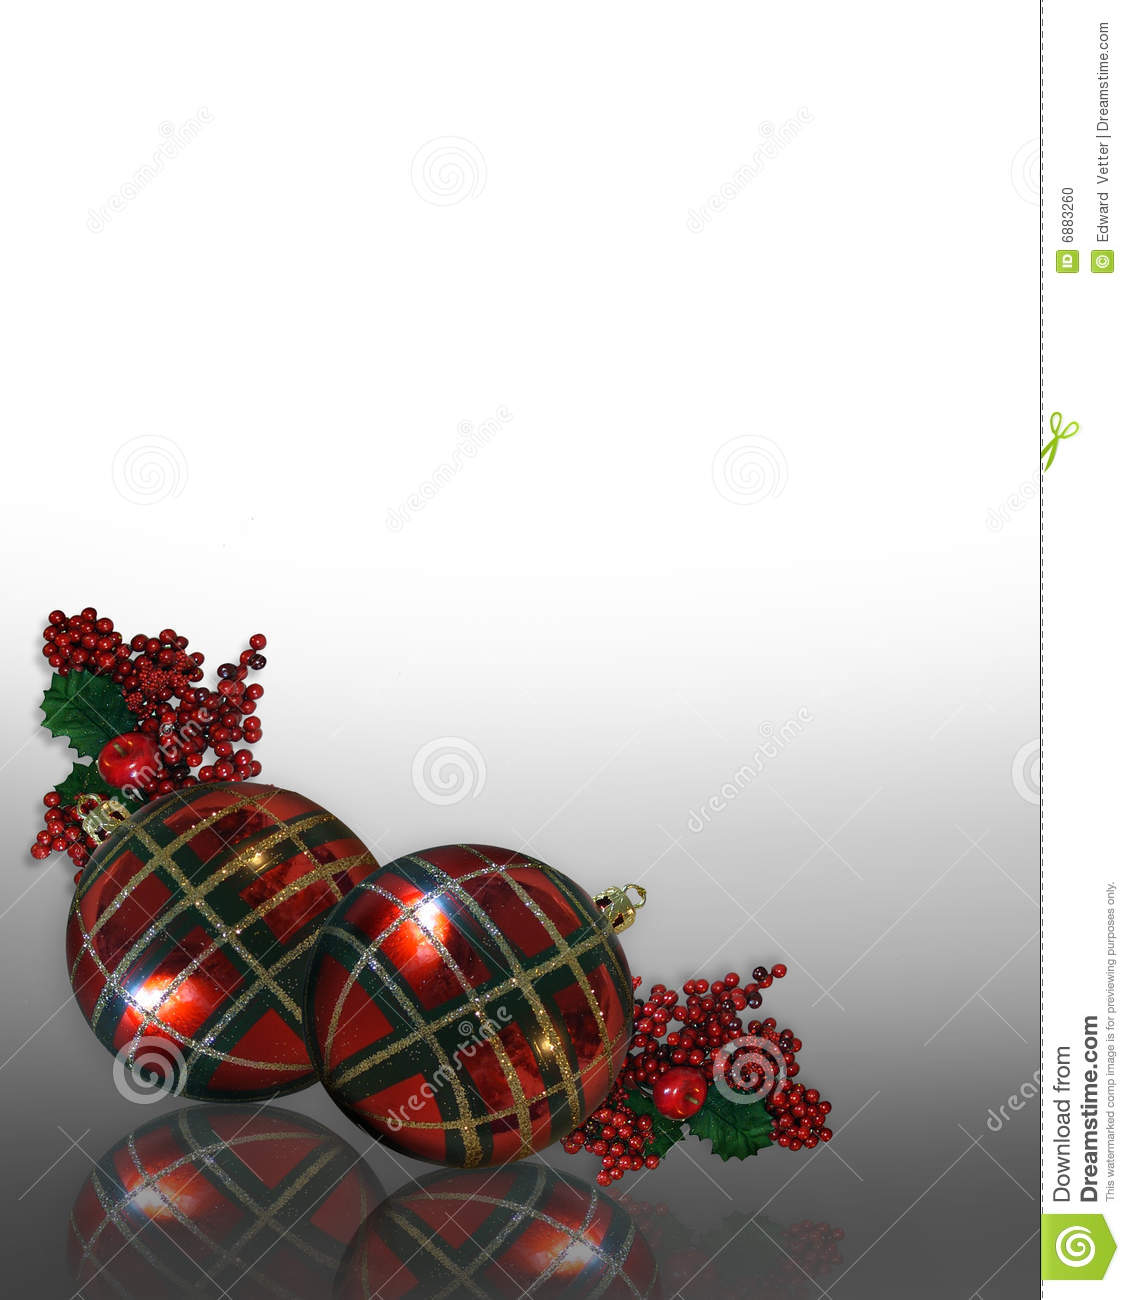 Christmas Border Ornaments Plaid Stock Illustration